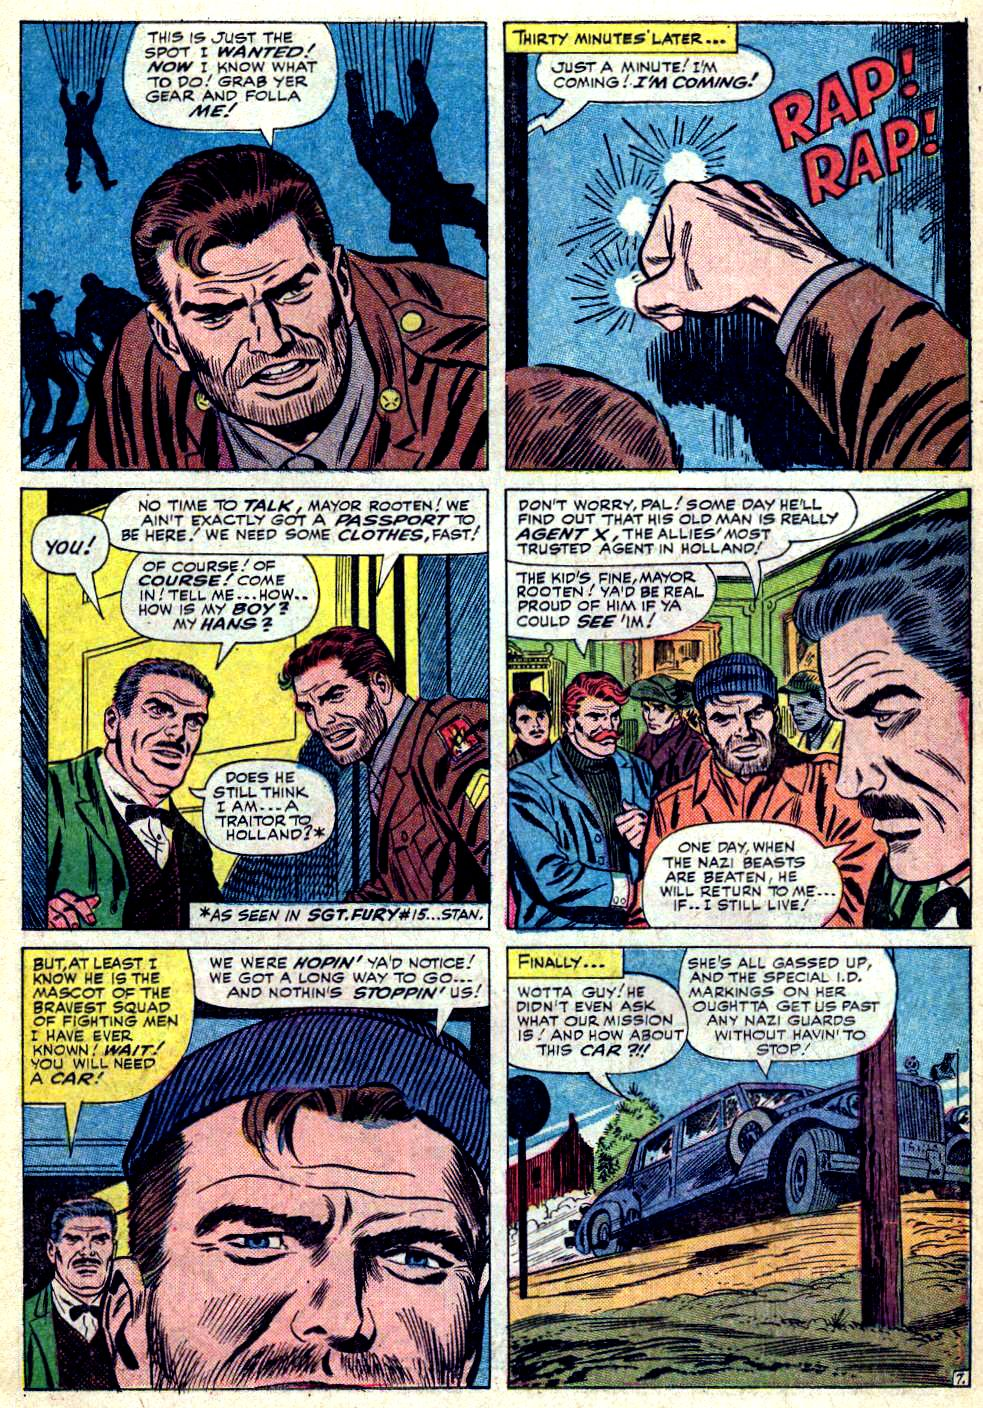 Read online Sgt. Fury comic -  Issue #19 - 11